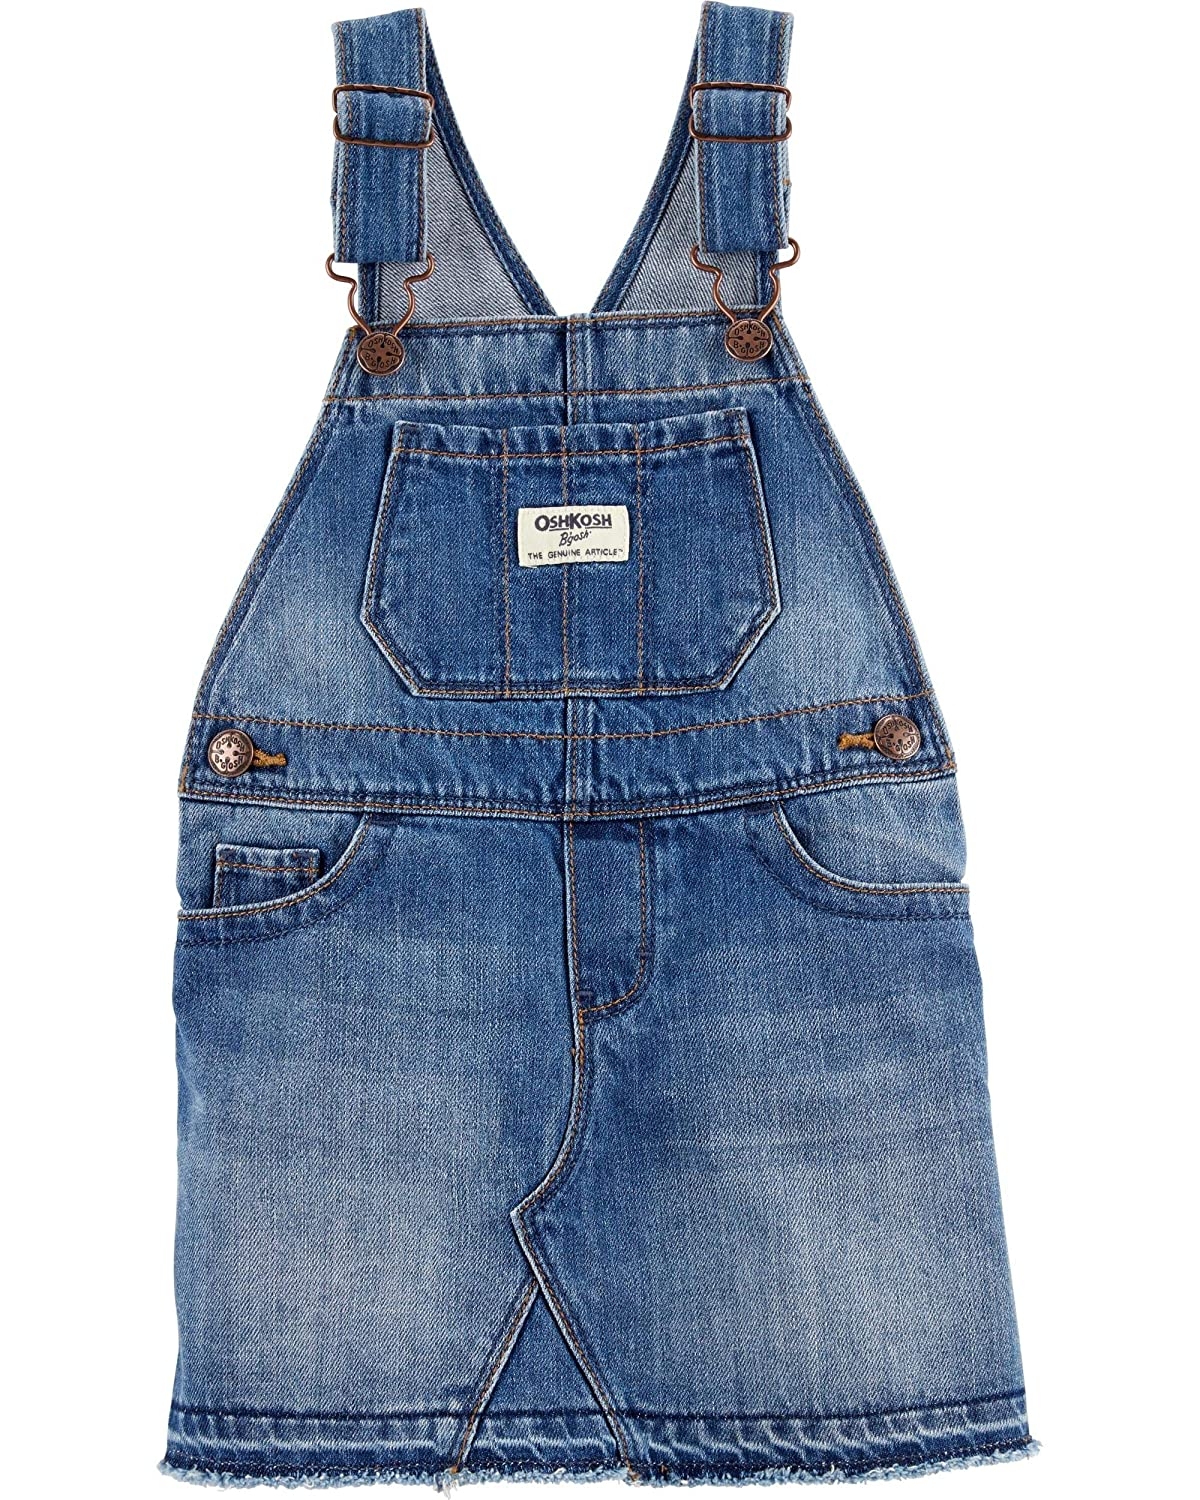 OshKosh B'Gosh 幼児|Denim PANTS ガールズ B07KRYQ5L1 B'Gosh Denim OshKosh Jumper 幼児 幼児|Denim Jumper|2T, HOBBY-JOY:1fae21a2 --- mail.tastykhabar.com